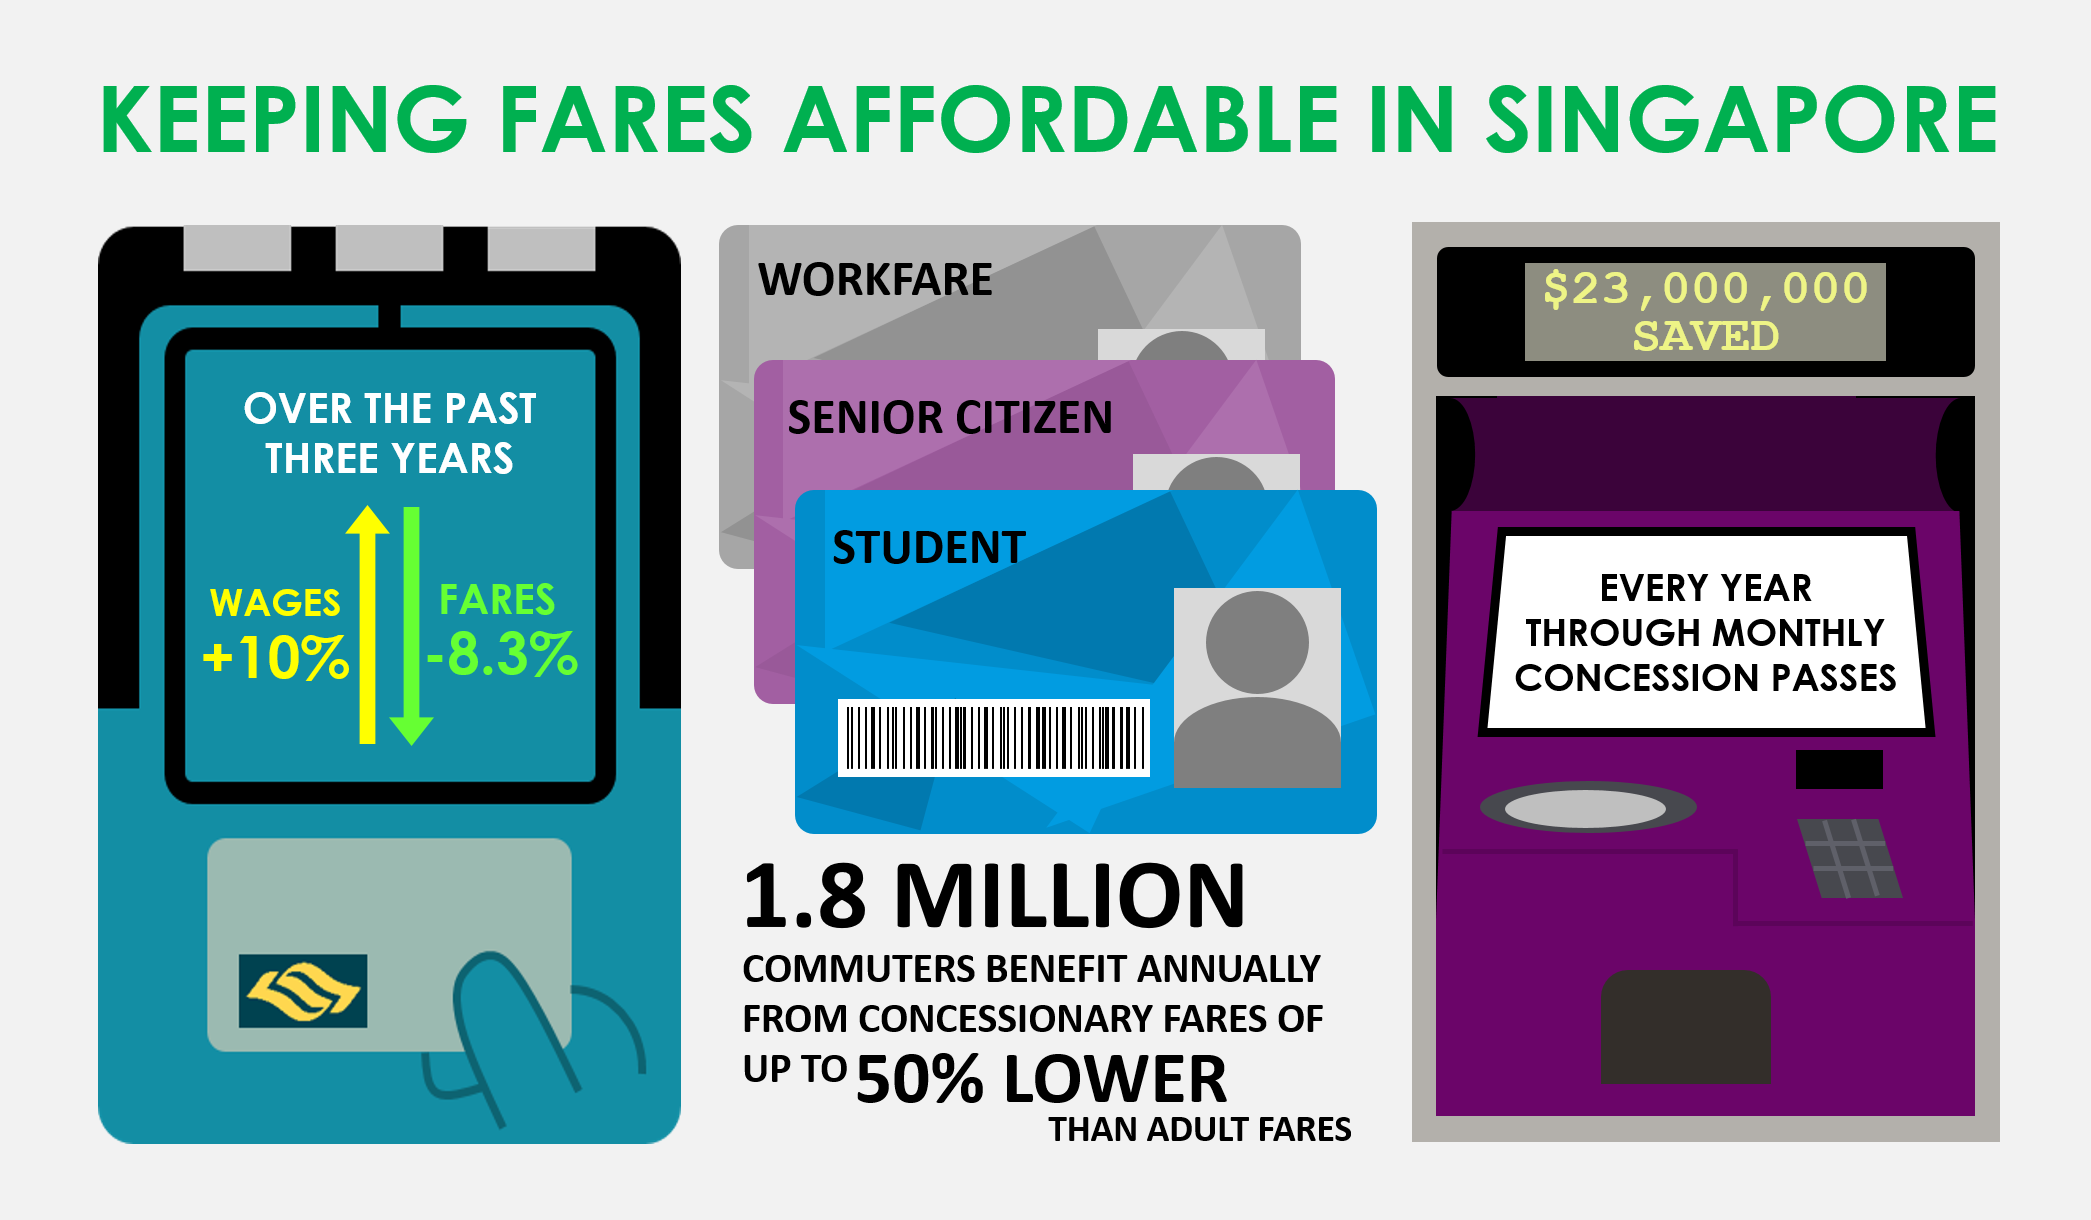 Fare Affordability Infographic